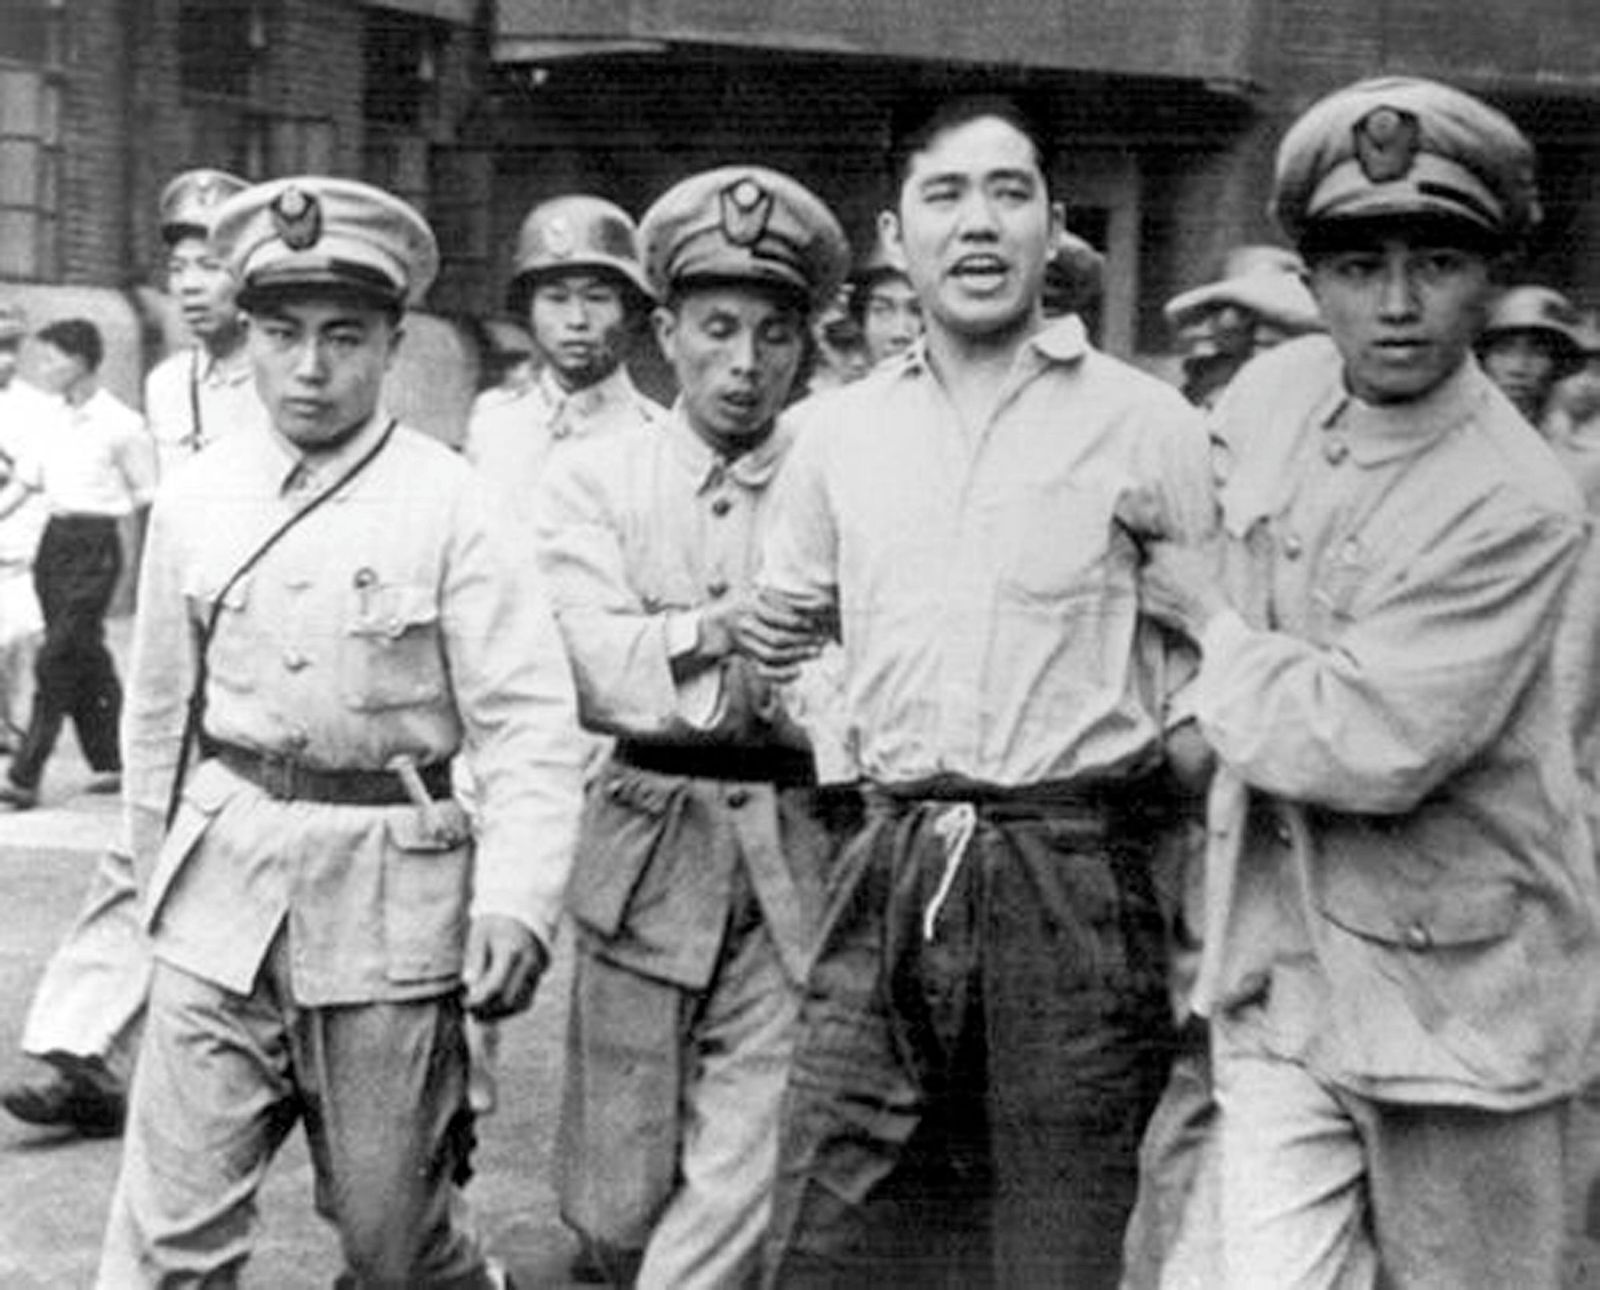 China: Wang Xiaohe (1924-1948) arrested and led away by Kuomintang security forces in Shanghai, 30 September, 1948. He w